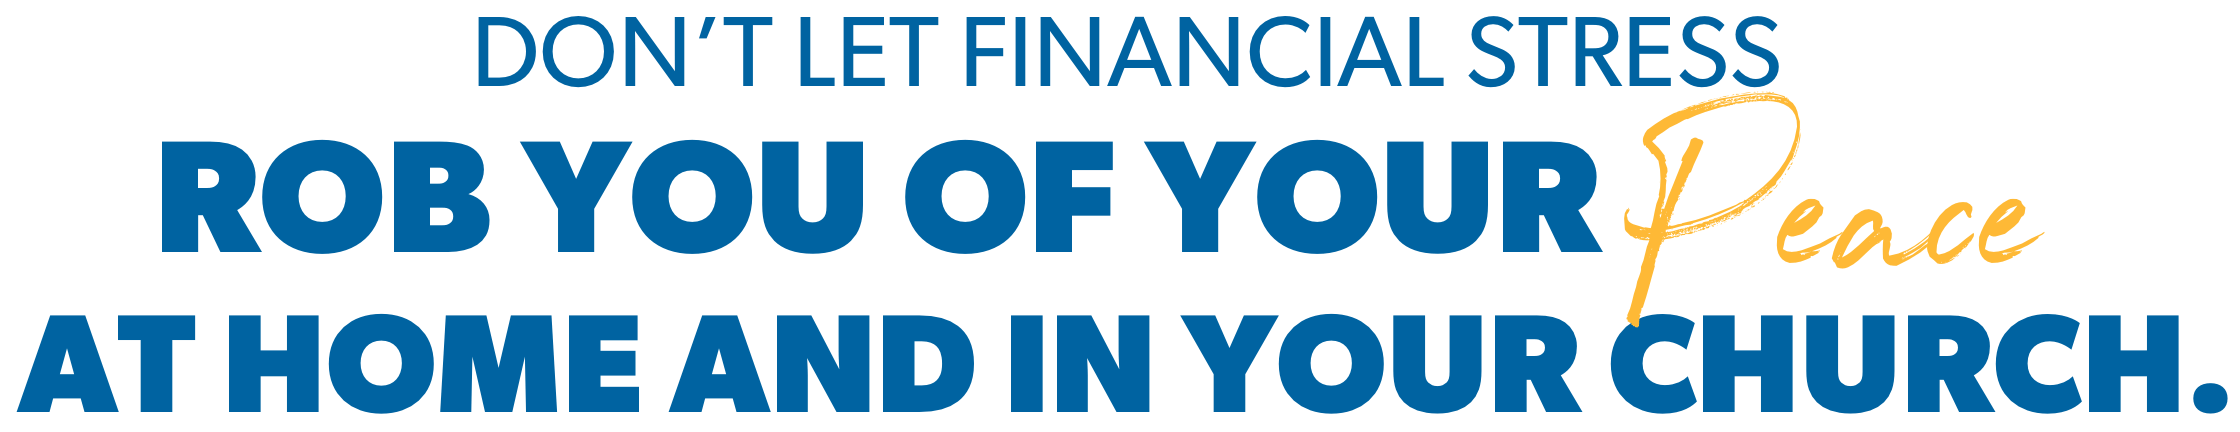 Don't let financial stress rob you!